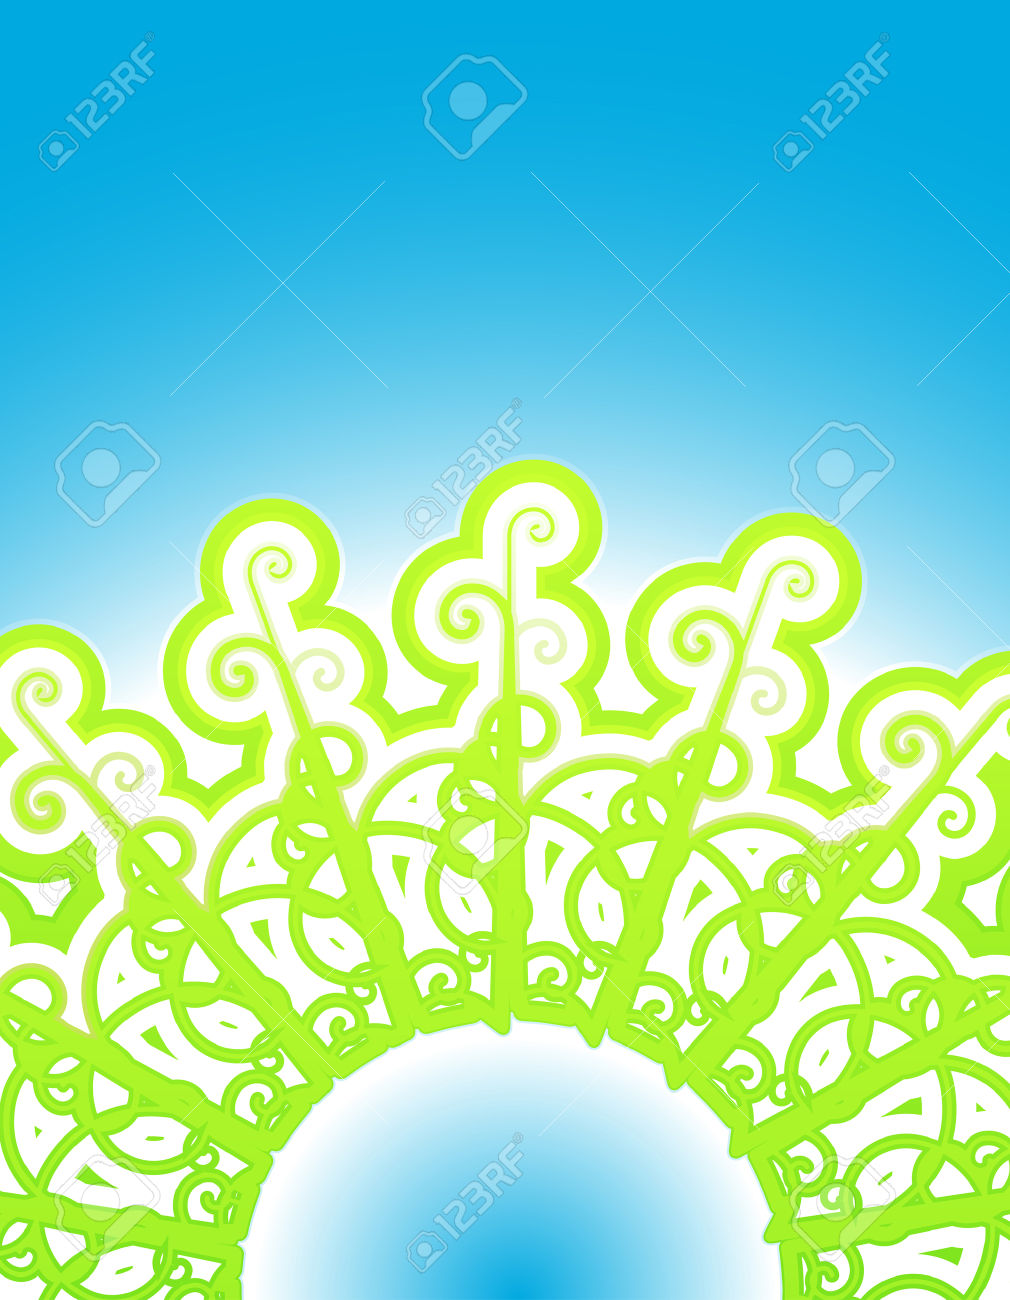 Vector Illustration Of Abstract Vines Forming A Circular Pattern.